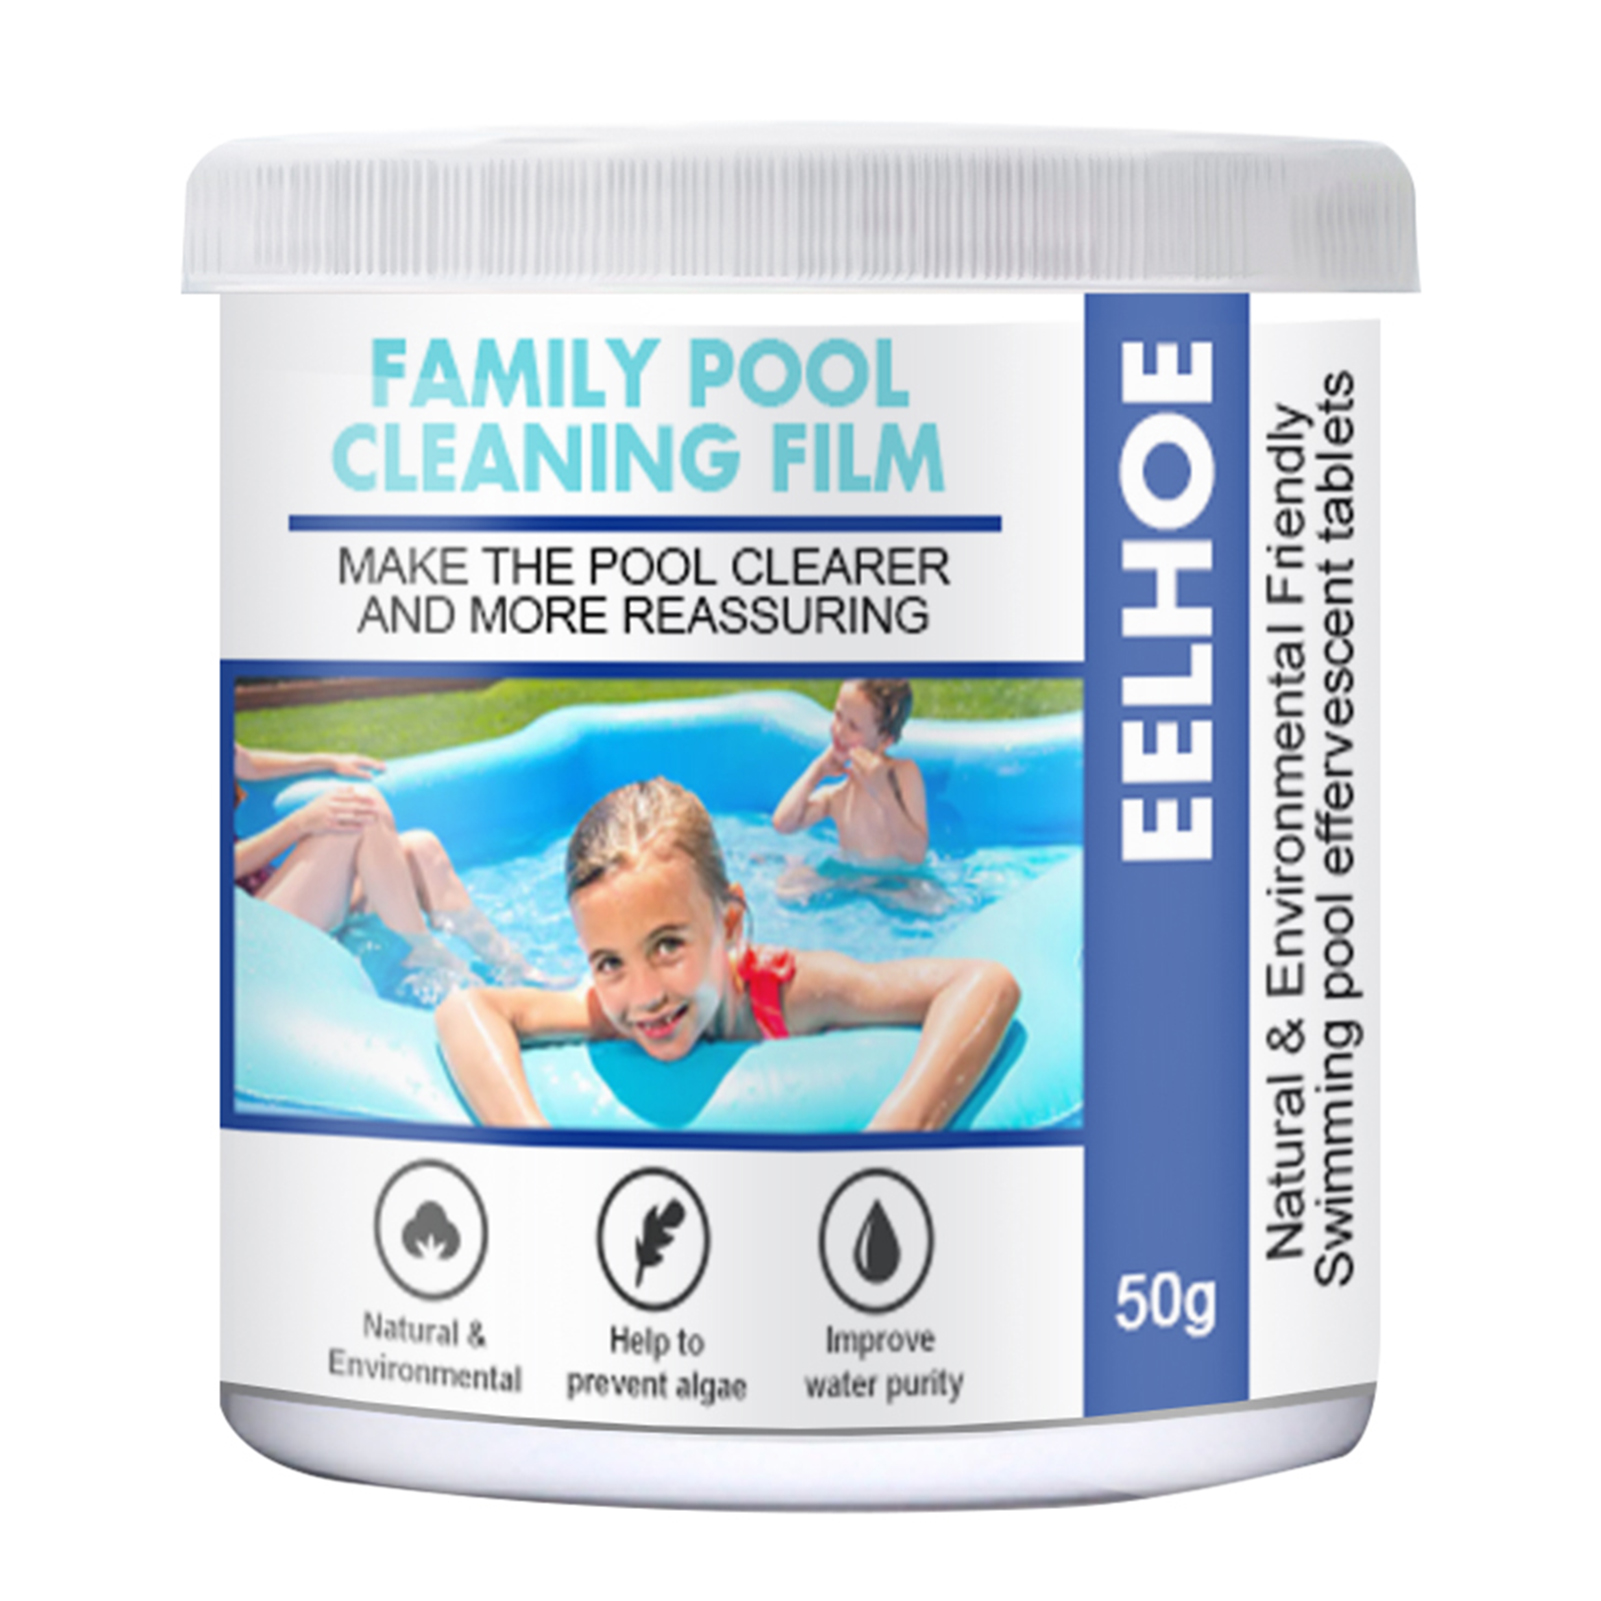 Swimming Pool Cleaning Tablets For Cleaning The Pool Chemical Test Chlorine Tablets For Water Purification Tablets Products Pool